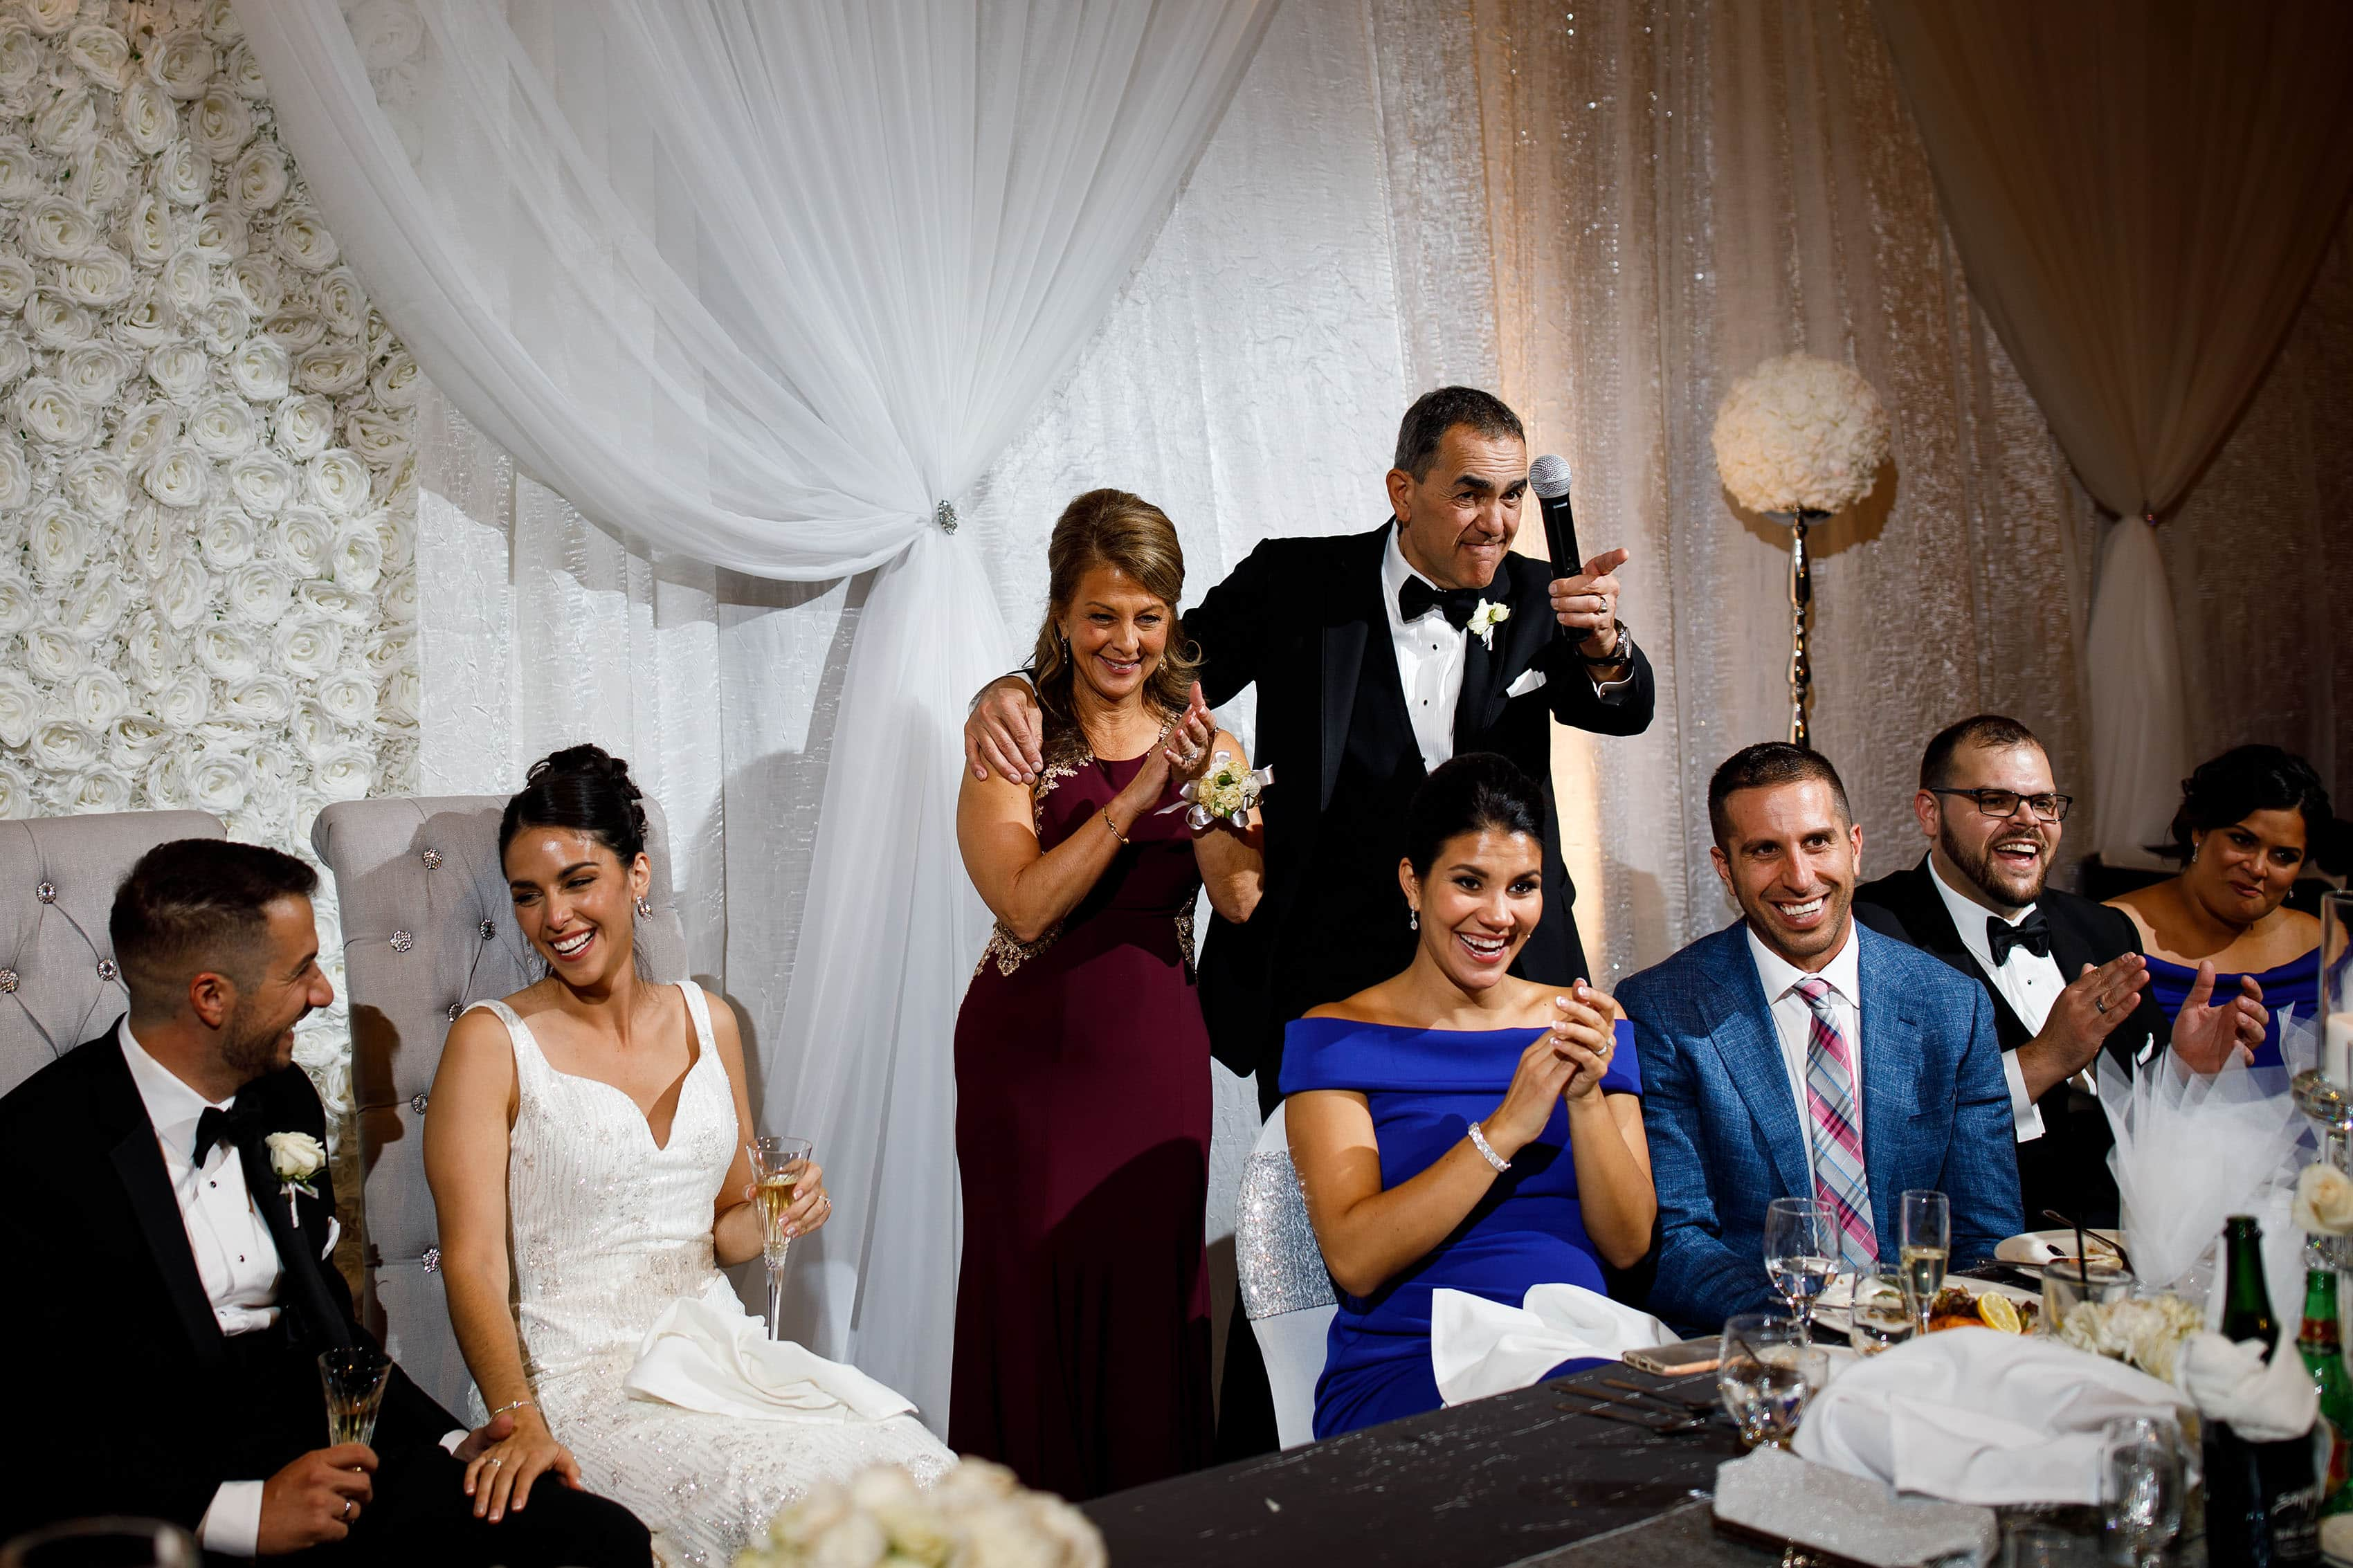 The father of the groom gives a toast during a Greek wedding at the Sheraton Albuquerque uptown